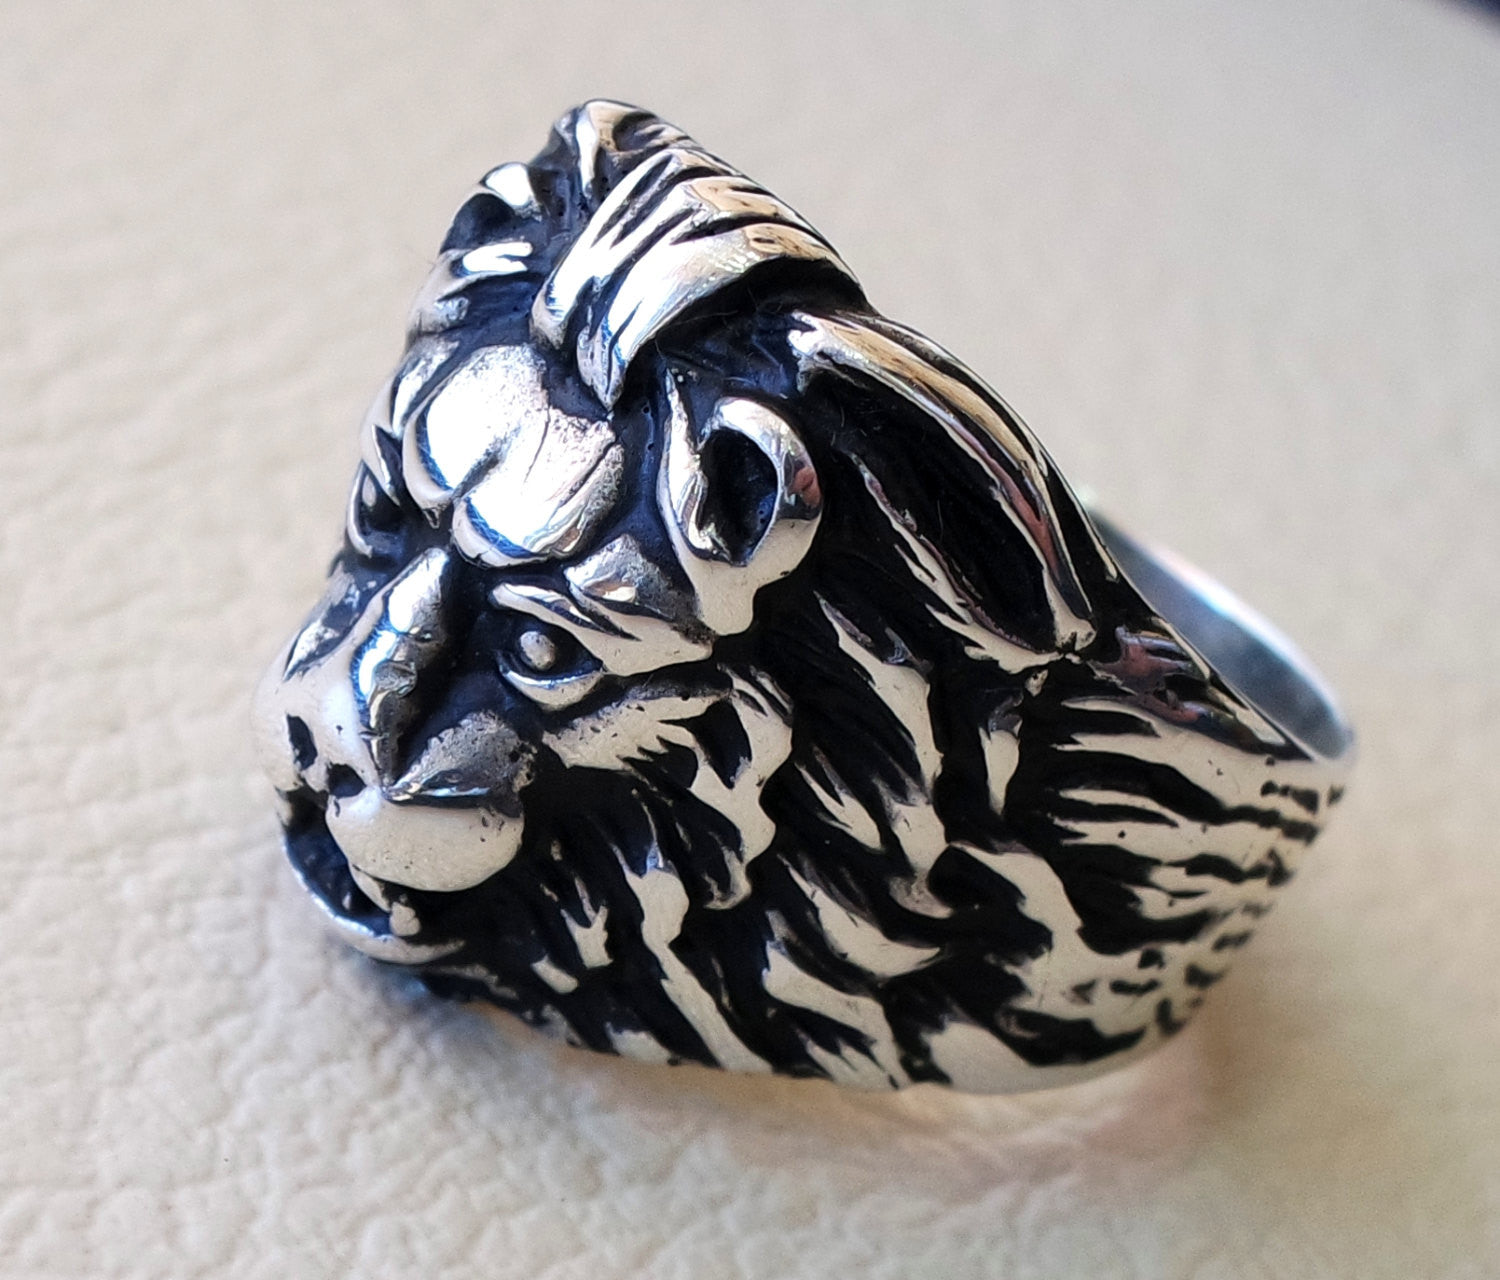 lion ring heavy sterling silver 925 man biker ring all sizes handmade animal head jewelry fast shipping detailed craftsmanship